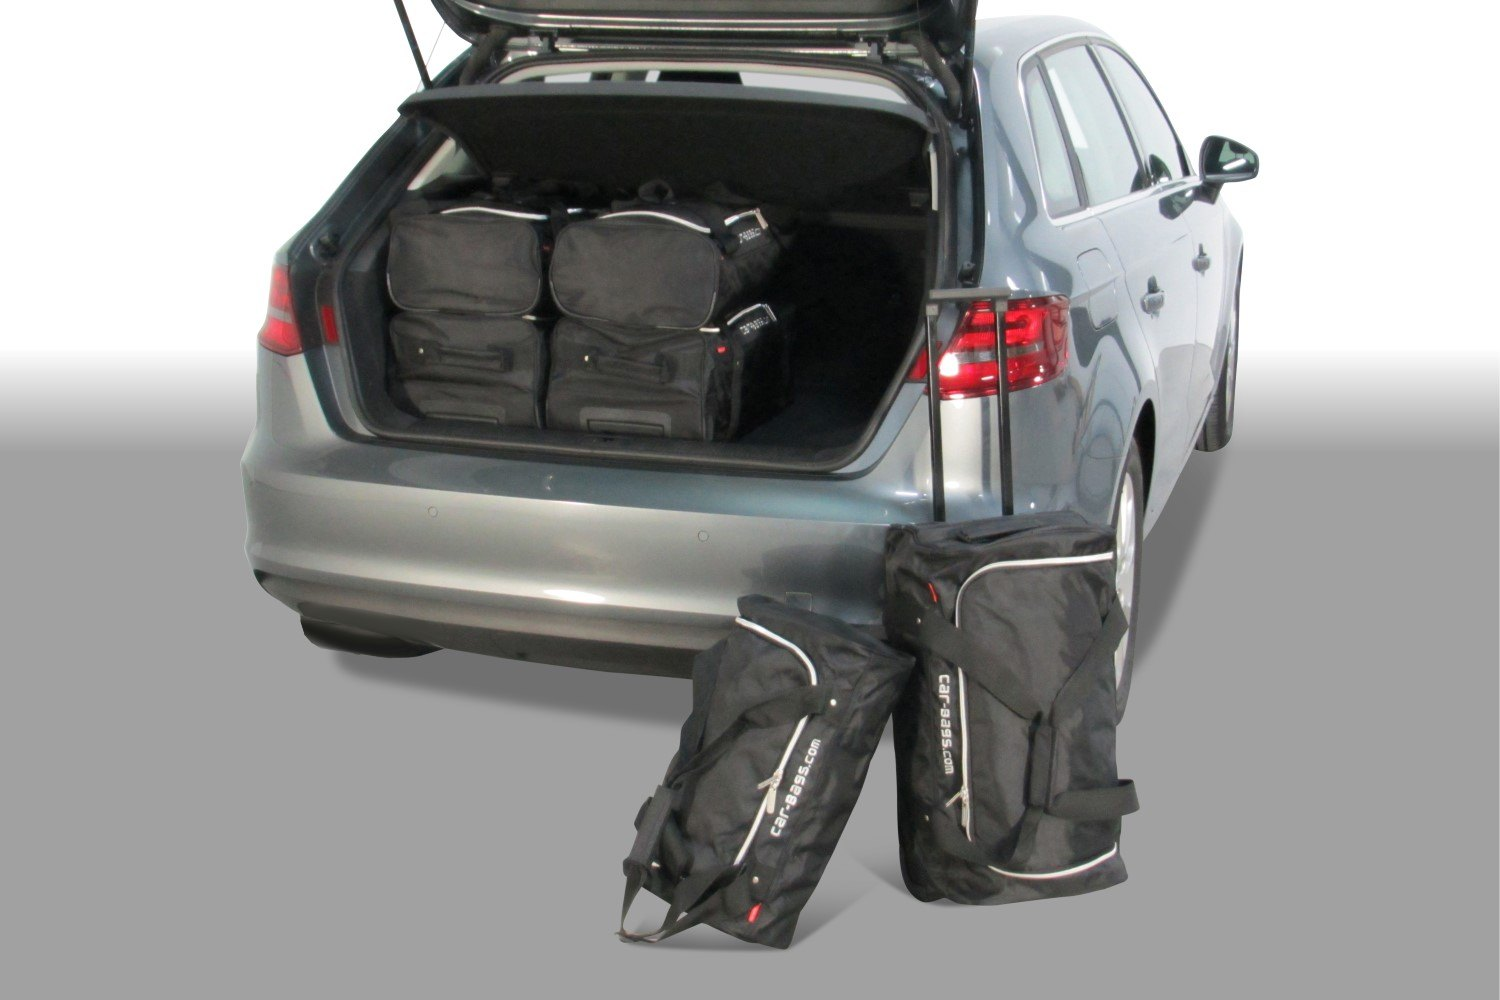 Audi A3 Sportback (8V) G-Tron 2013- 5 door Car-Bags.com travel bag set (1)